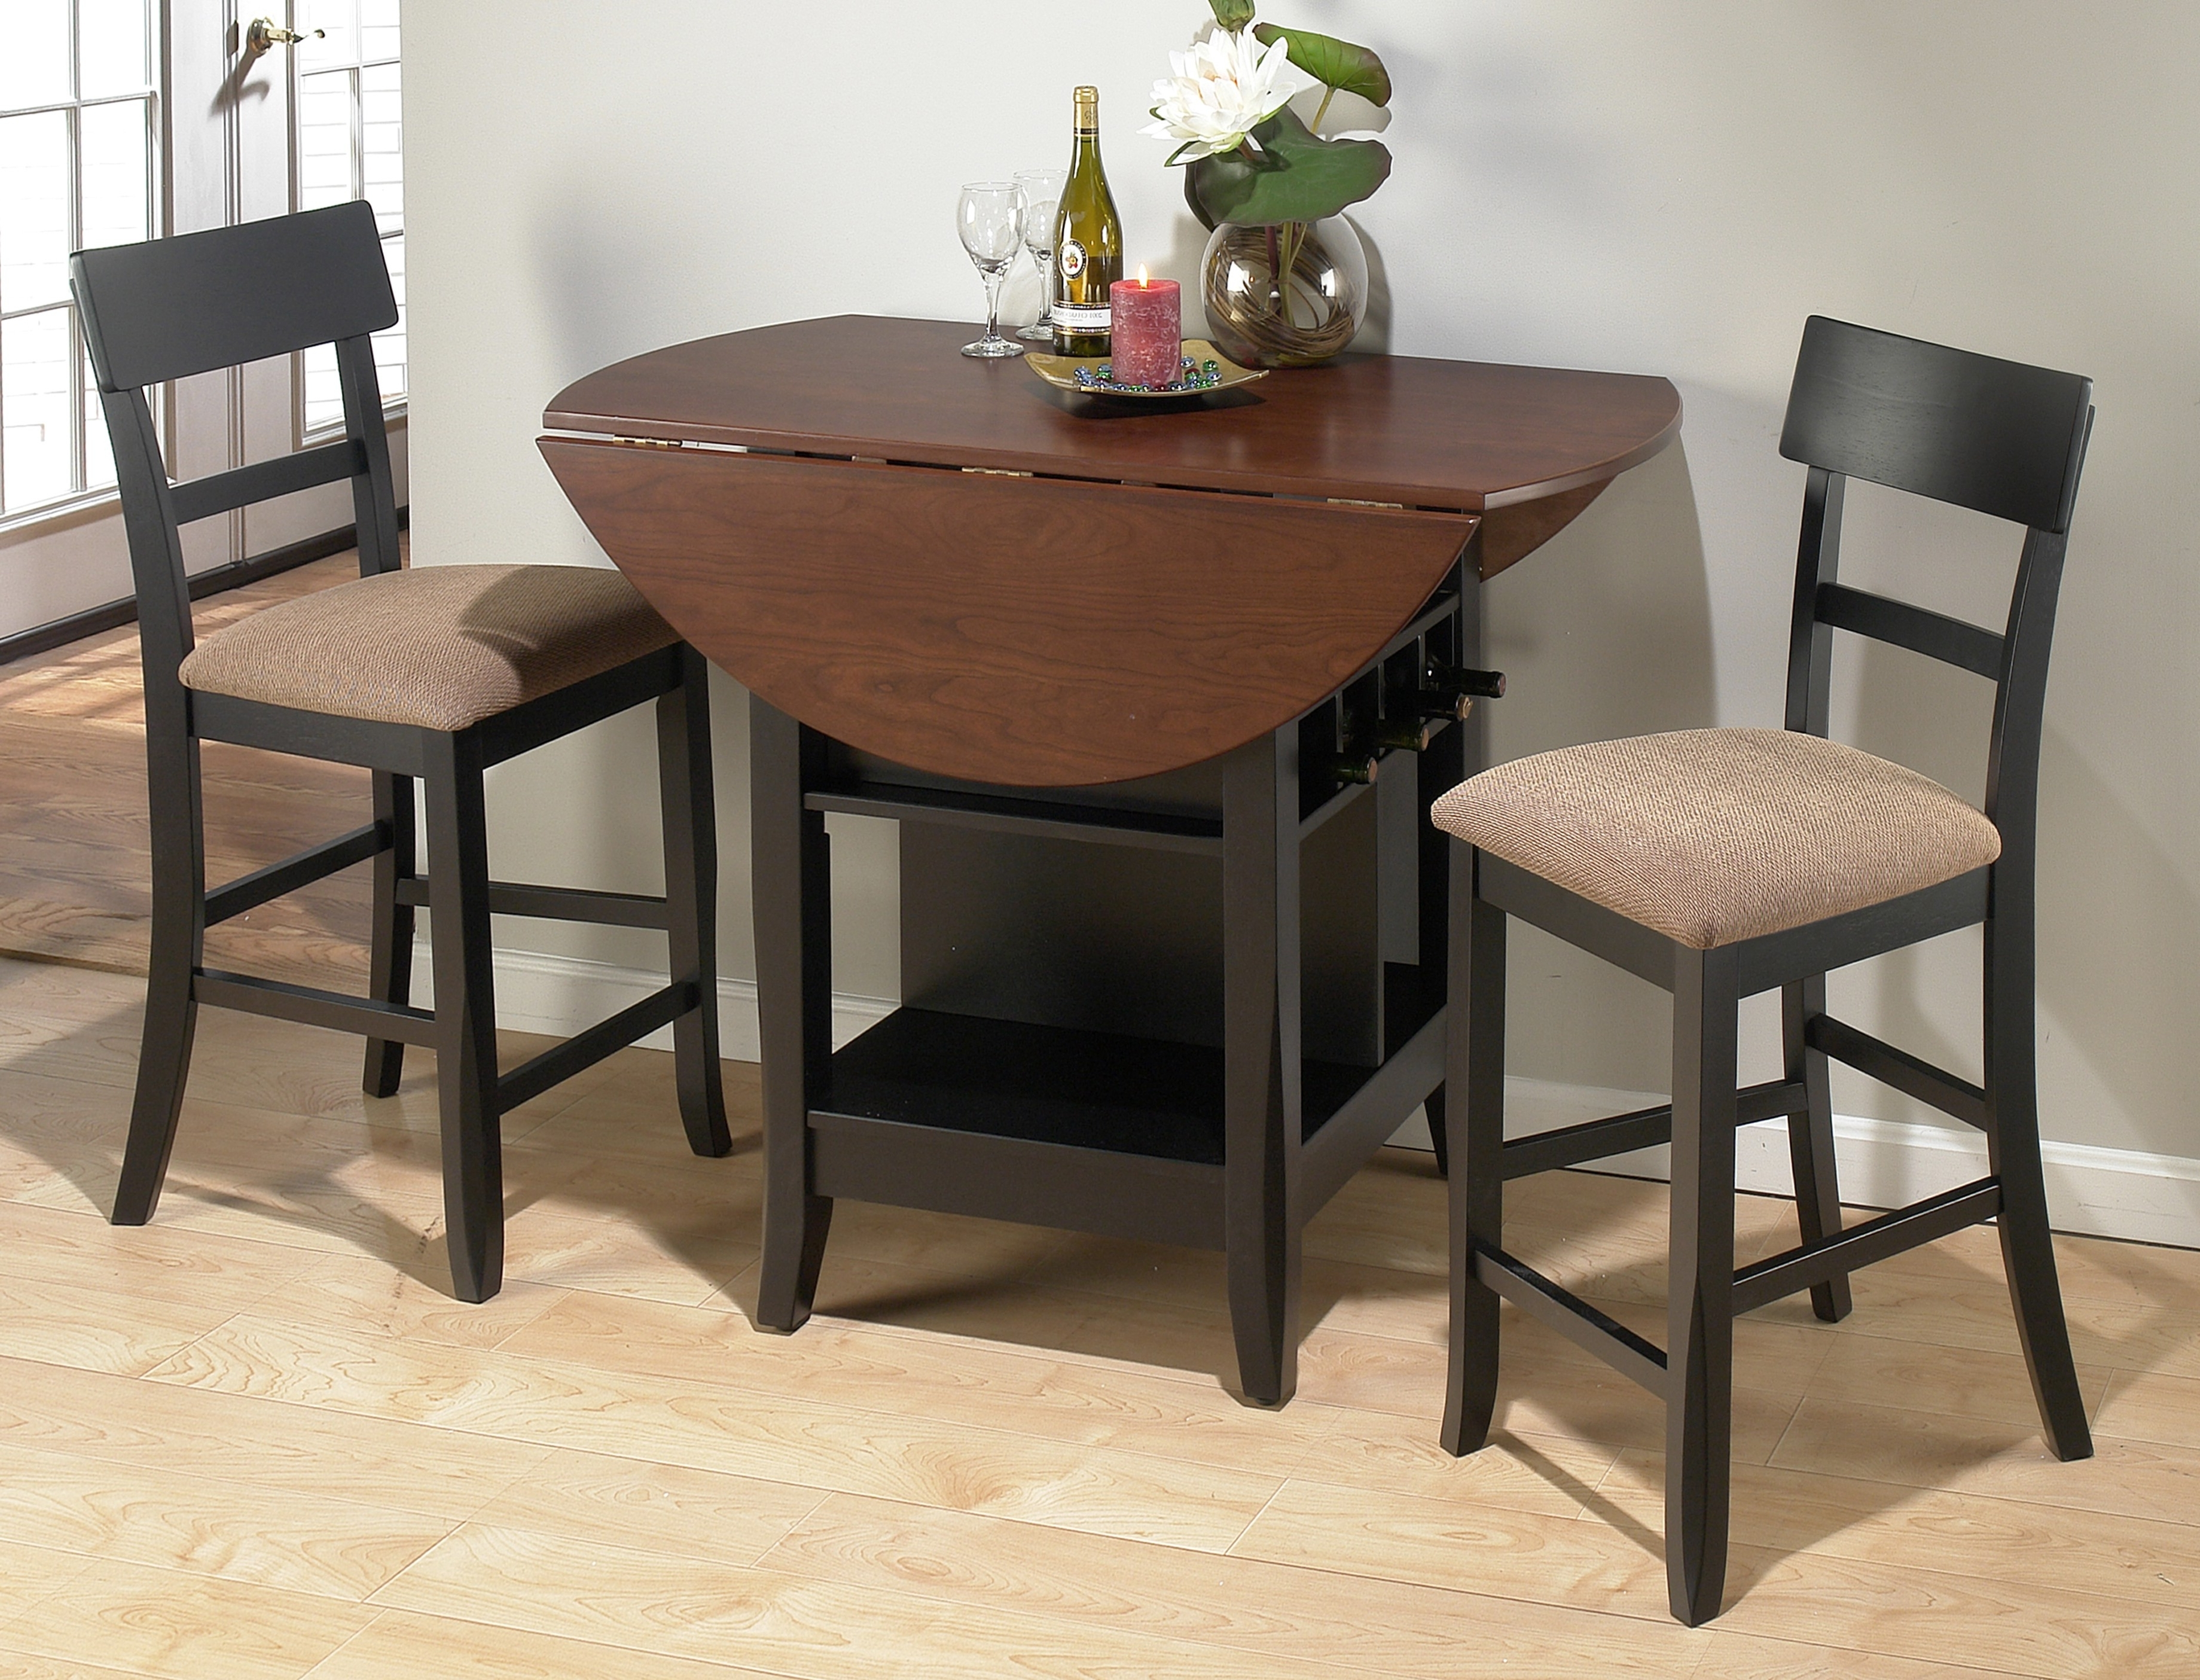 Most Popular Dining Room Kitchen Table Sets For Small Areas Small Dining Table Throughout Compact Dining Tables And Chairs (View 4 of 25)